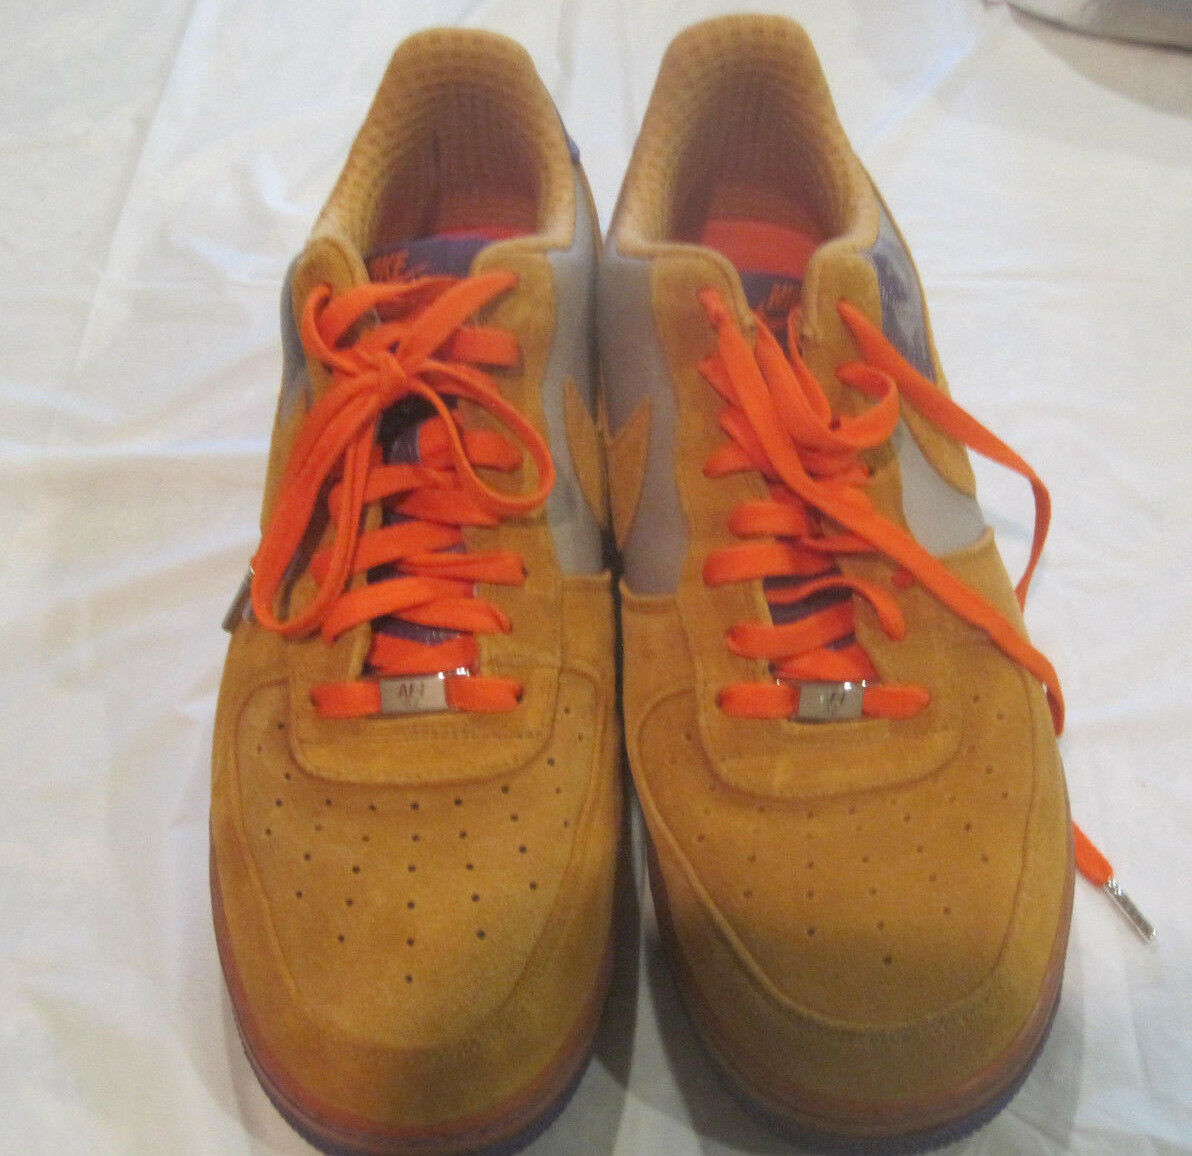 Nike Air Force 1 Amare Stoudemire Stoudemire Stoudemire 315182-071Mens shoes Size 13Free ShipLBDLK a82342